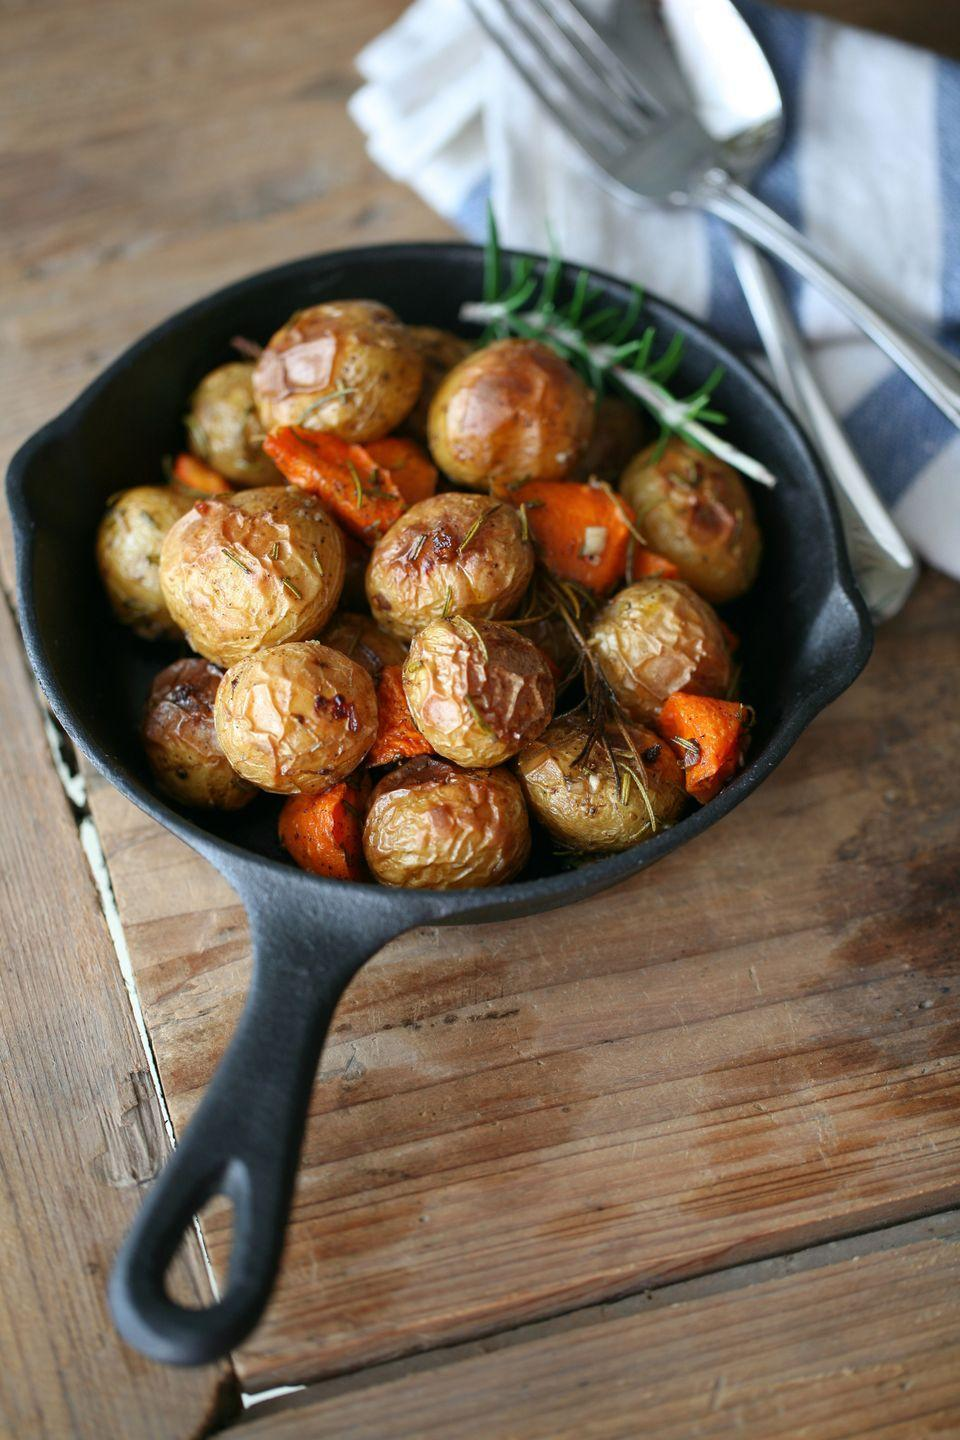 "<p>Upgrade roasted potatoes by using aromatic rosemary. It's delicious, and your kitchen will smell wonderful!</p><p><strong><a href=""https://www.countryliving.com/food-drinks/recipes/a1546/rosemary-roasted-potatoes-3658/"" rel=""nofollow noopener"" target=""_blank"" data-ylk=""slk:Get the recipe"" class=""link rapid-noclick-resp"">Get the recipe</a>.</strong></p><p><a class=""link rapid-noclick-resp"" href=""https://www.amazon.com/dp/B07PP9TPRZ/?tag=syn-yahoo-20&ascsubtag=%5Bartid%7C10050.g.1050%5Bsrc%7Cyahoo-us"" rel=""nofollow noopener"" target=""_blank"" data-ylk=""slk:SHOP CAST IRON SKILLETS"">SHOP CAST IRON SKILLETS</a><br></p>"